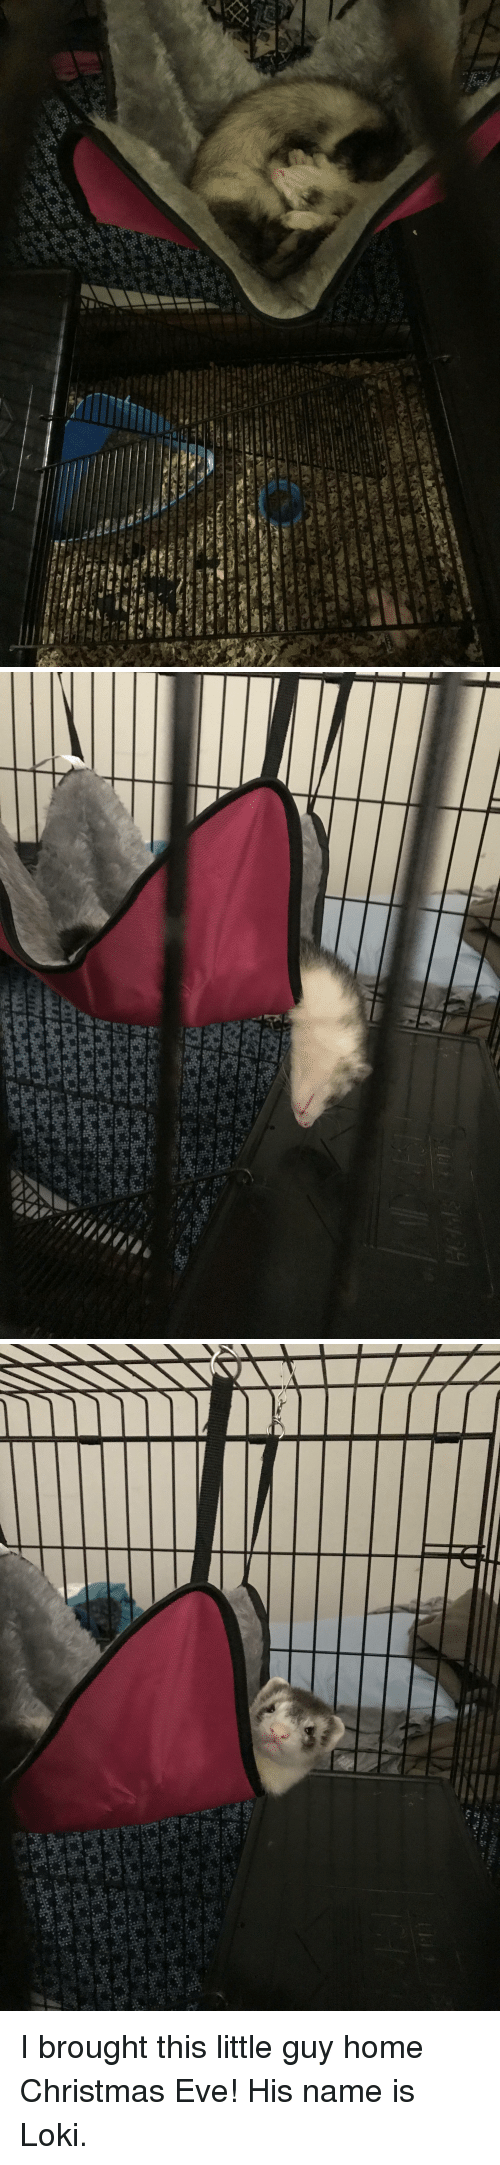 Ferret: I brought this little guy home Christmas Eve! His name is Loki.